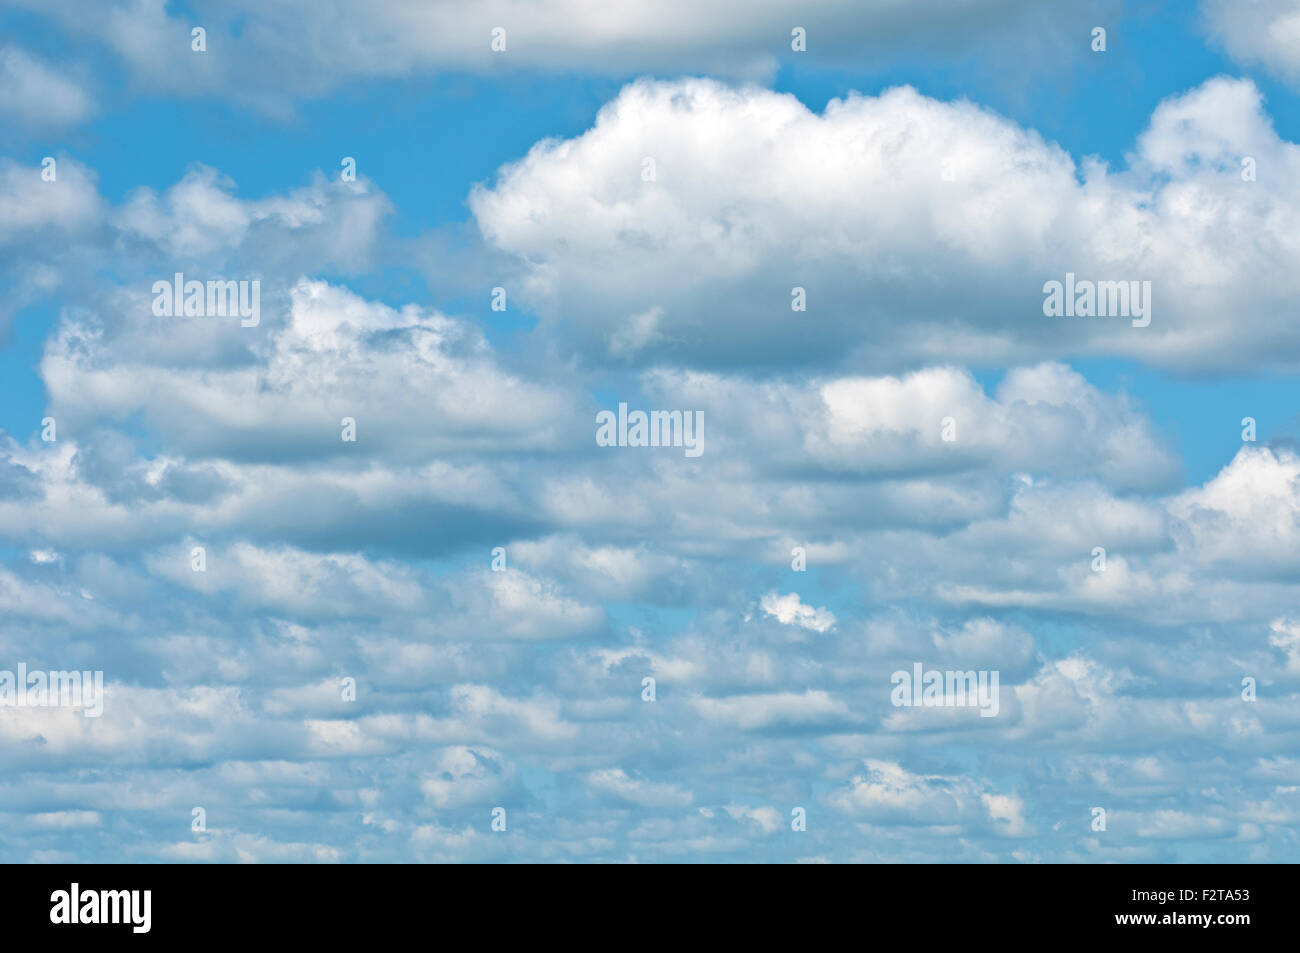 Summer clouds - Stock Image